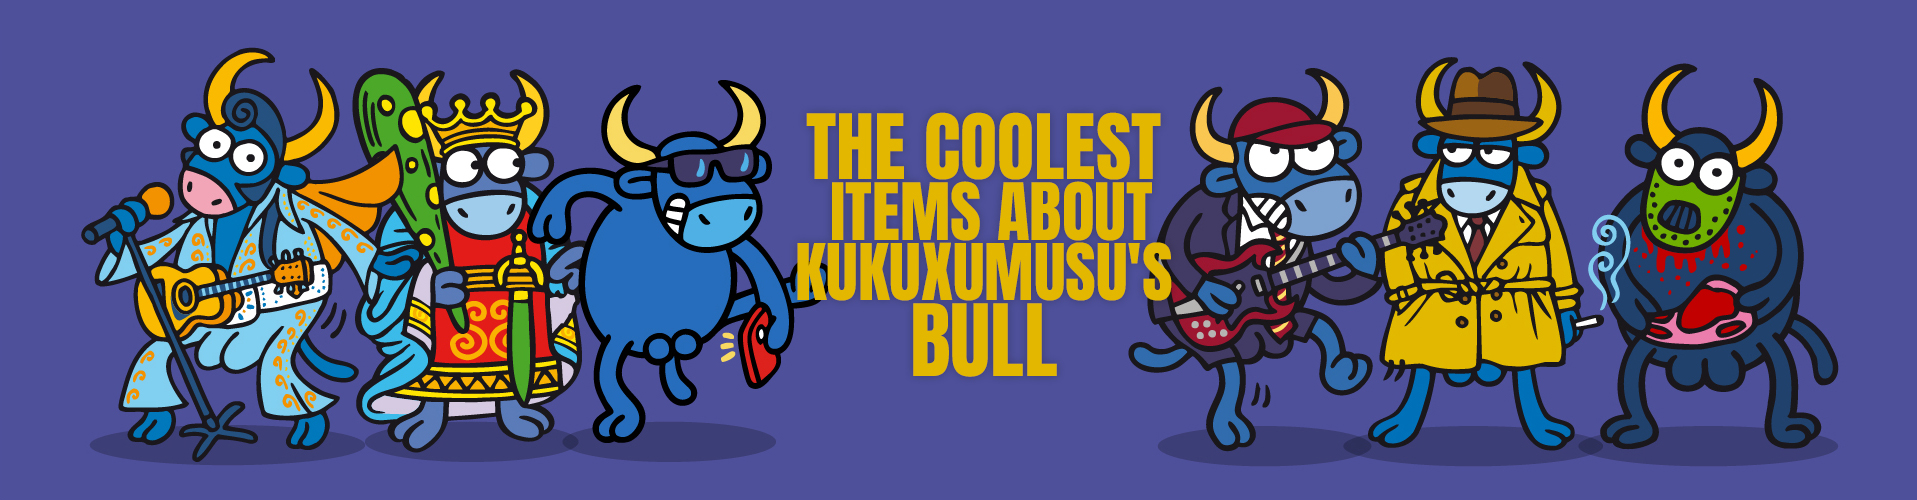 THE COOLEST ITEMS ABOUT KUKUXUMUSU'S BULL